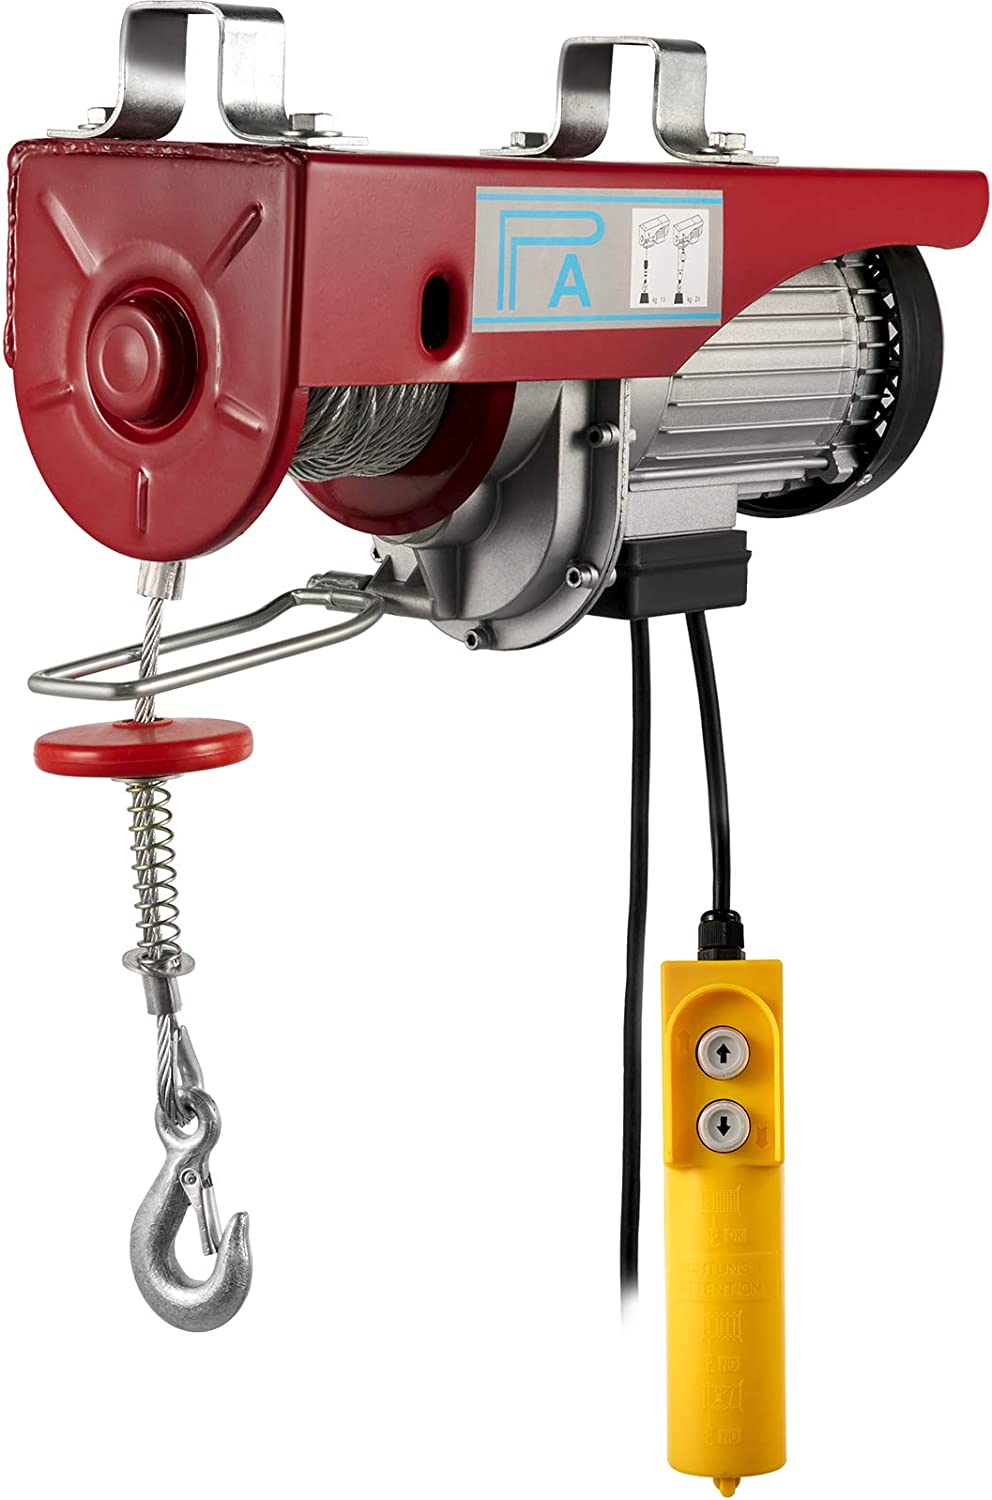 Happybuy 2000 LBS Lift Electric Hoist, 110V Electric Hoist, Remote Control Electric Winch Overhead Crane Lift Electric Wire Hoist for Factories, Warehouses